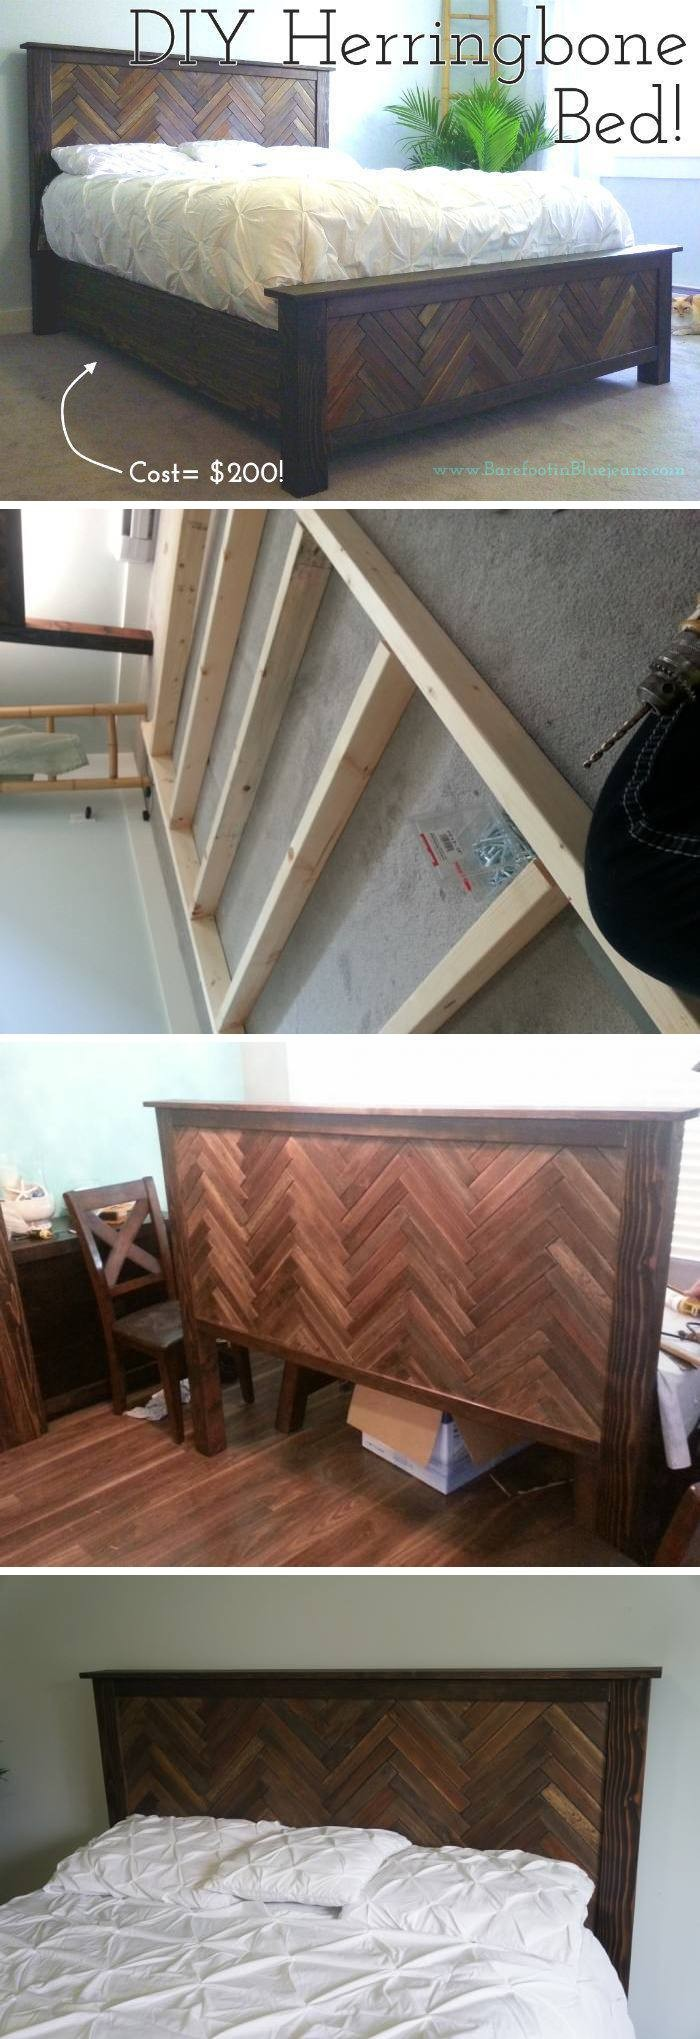 DIY Herringbone Bed Frame - diy bed frame - DIY Bed Plans -diy bed